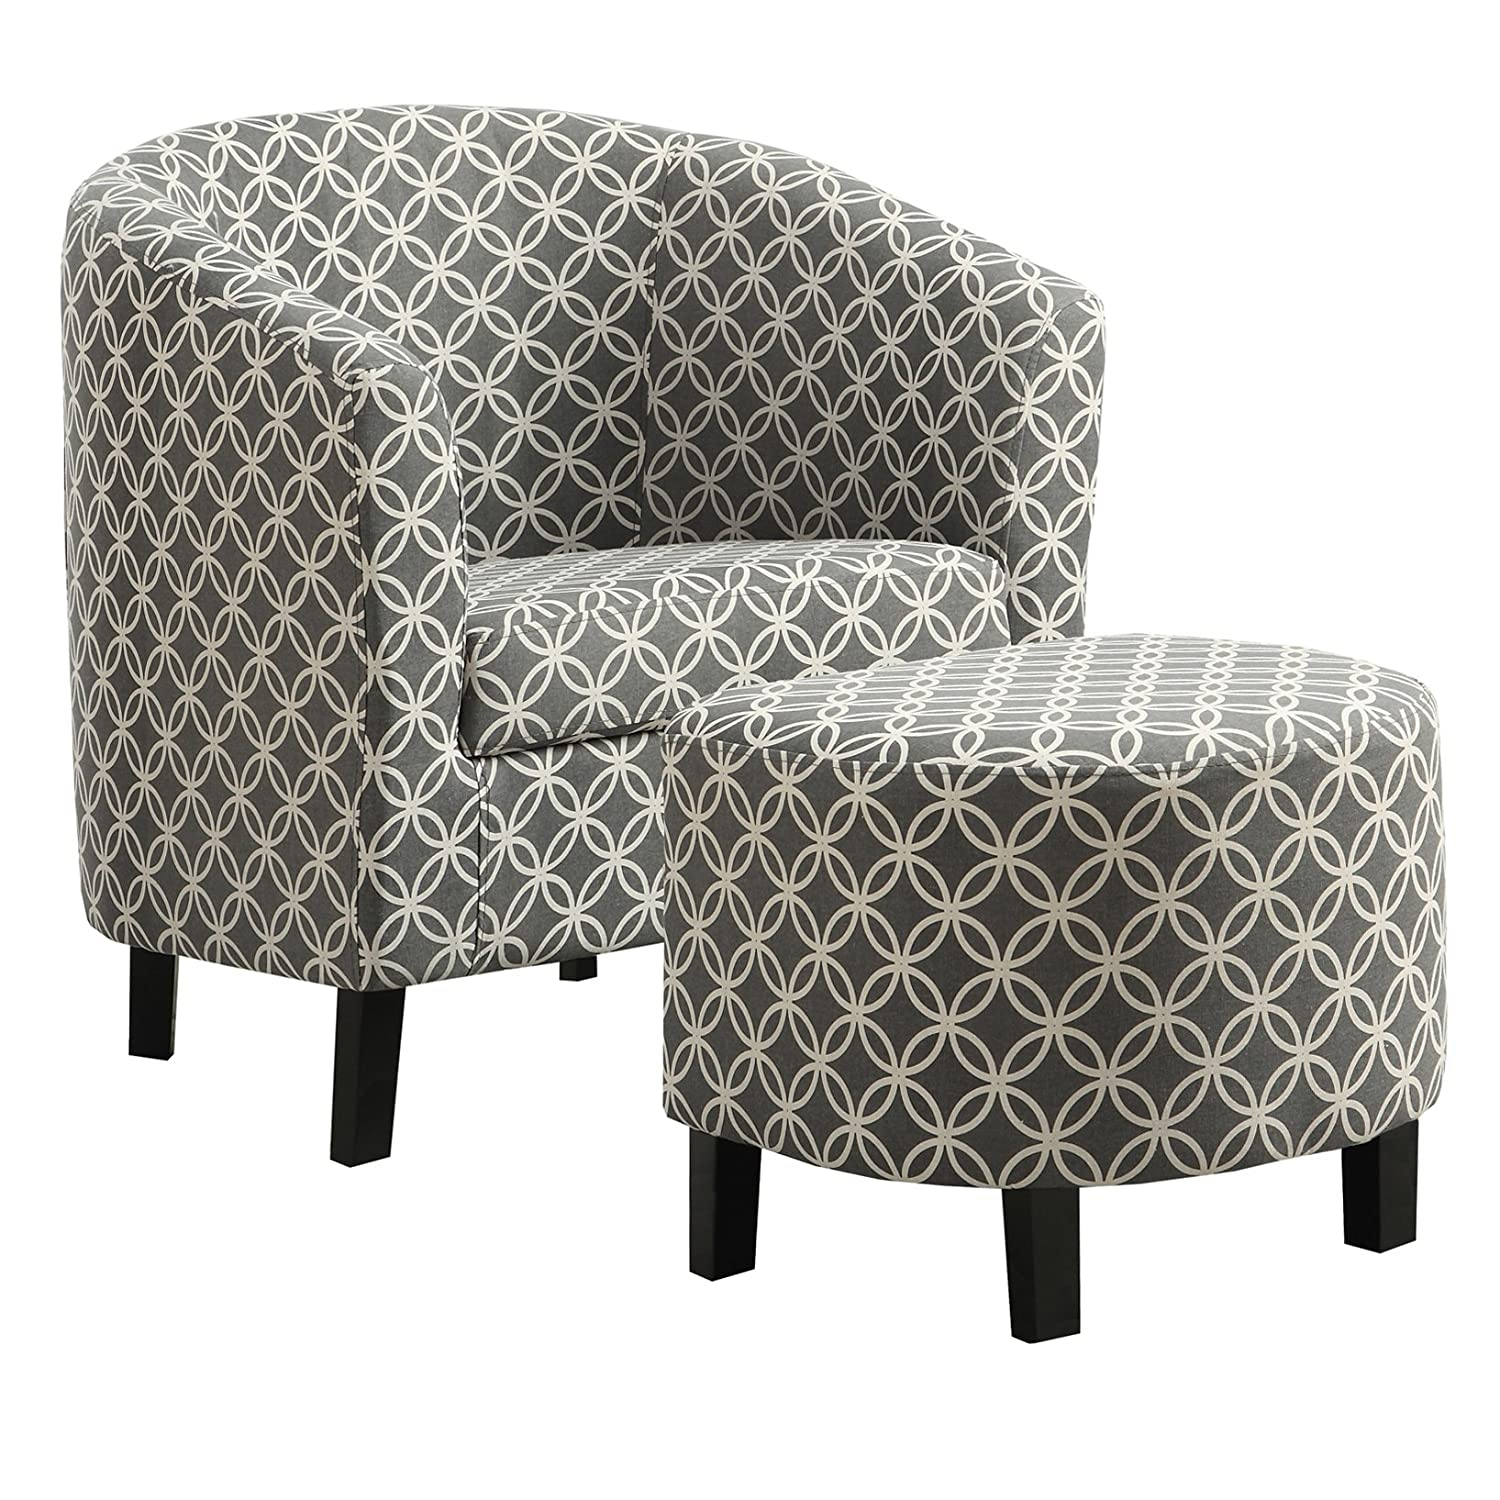 Monarch Specialties I 8060 GreyCircular Fabric Accent Chair and Ottoman, 30 30